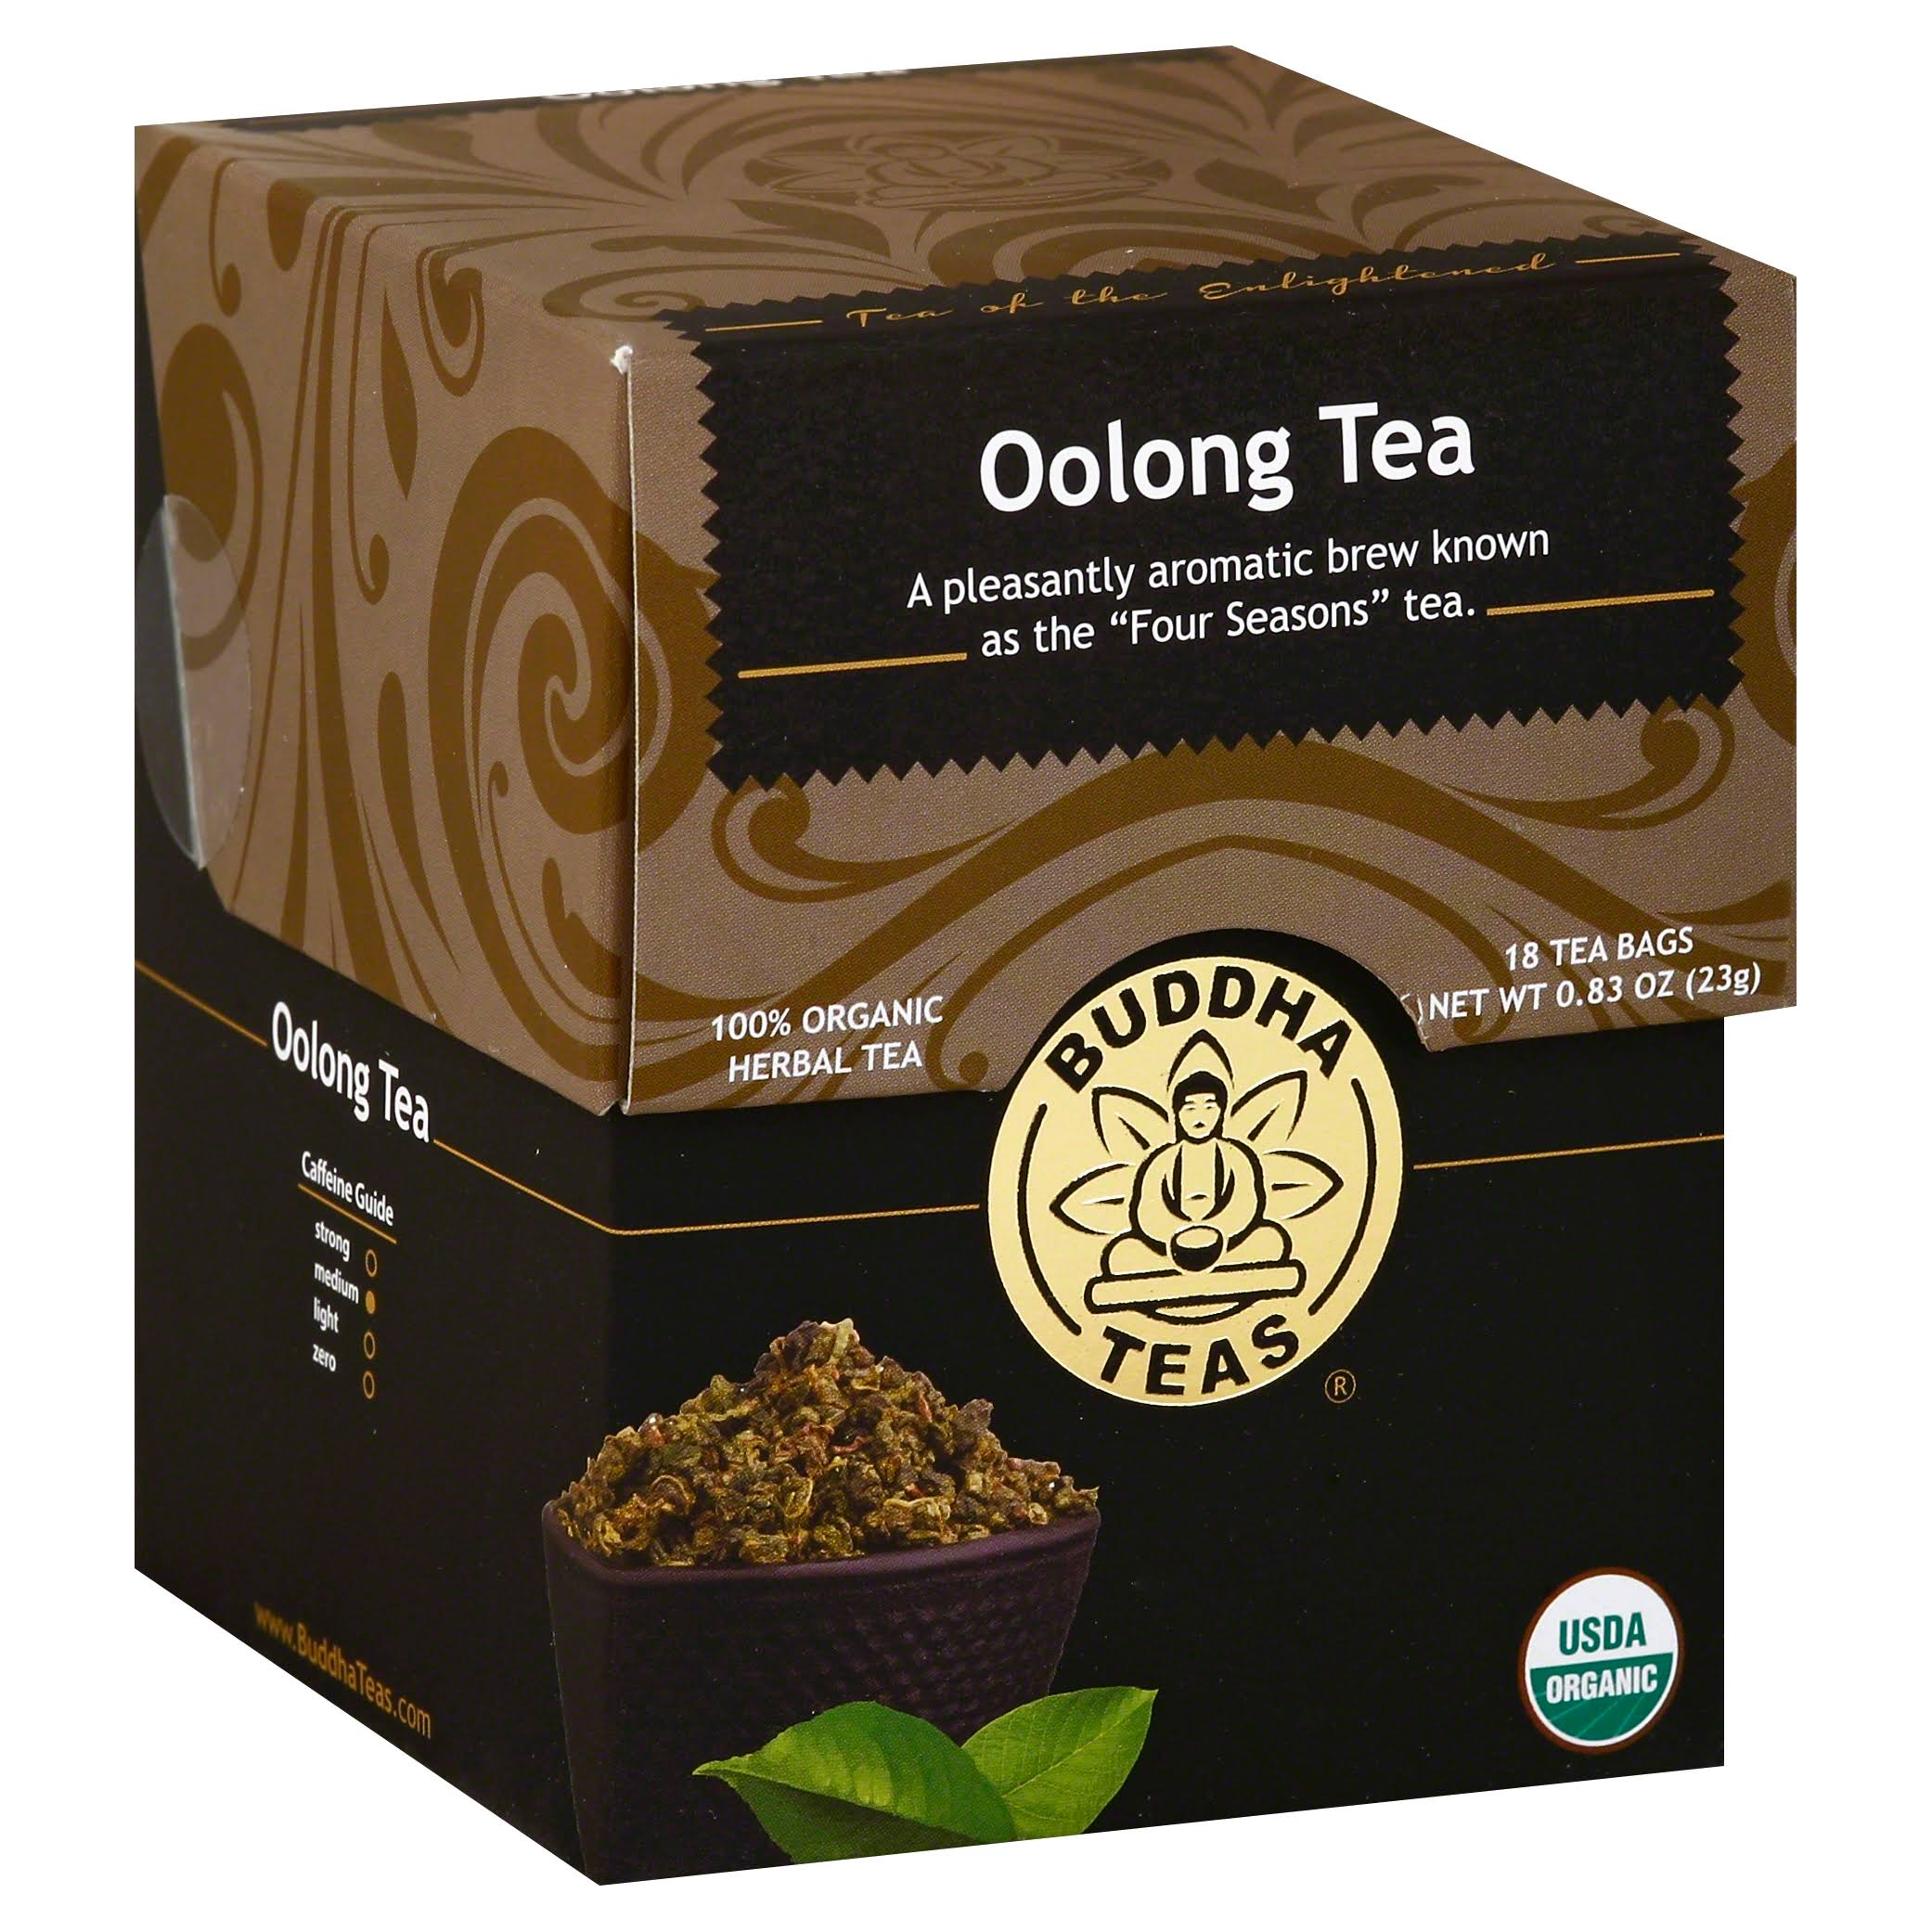 Oolong Tea Buddha Teas Organic Herbal Tea - 18ct